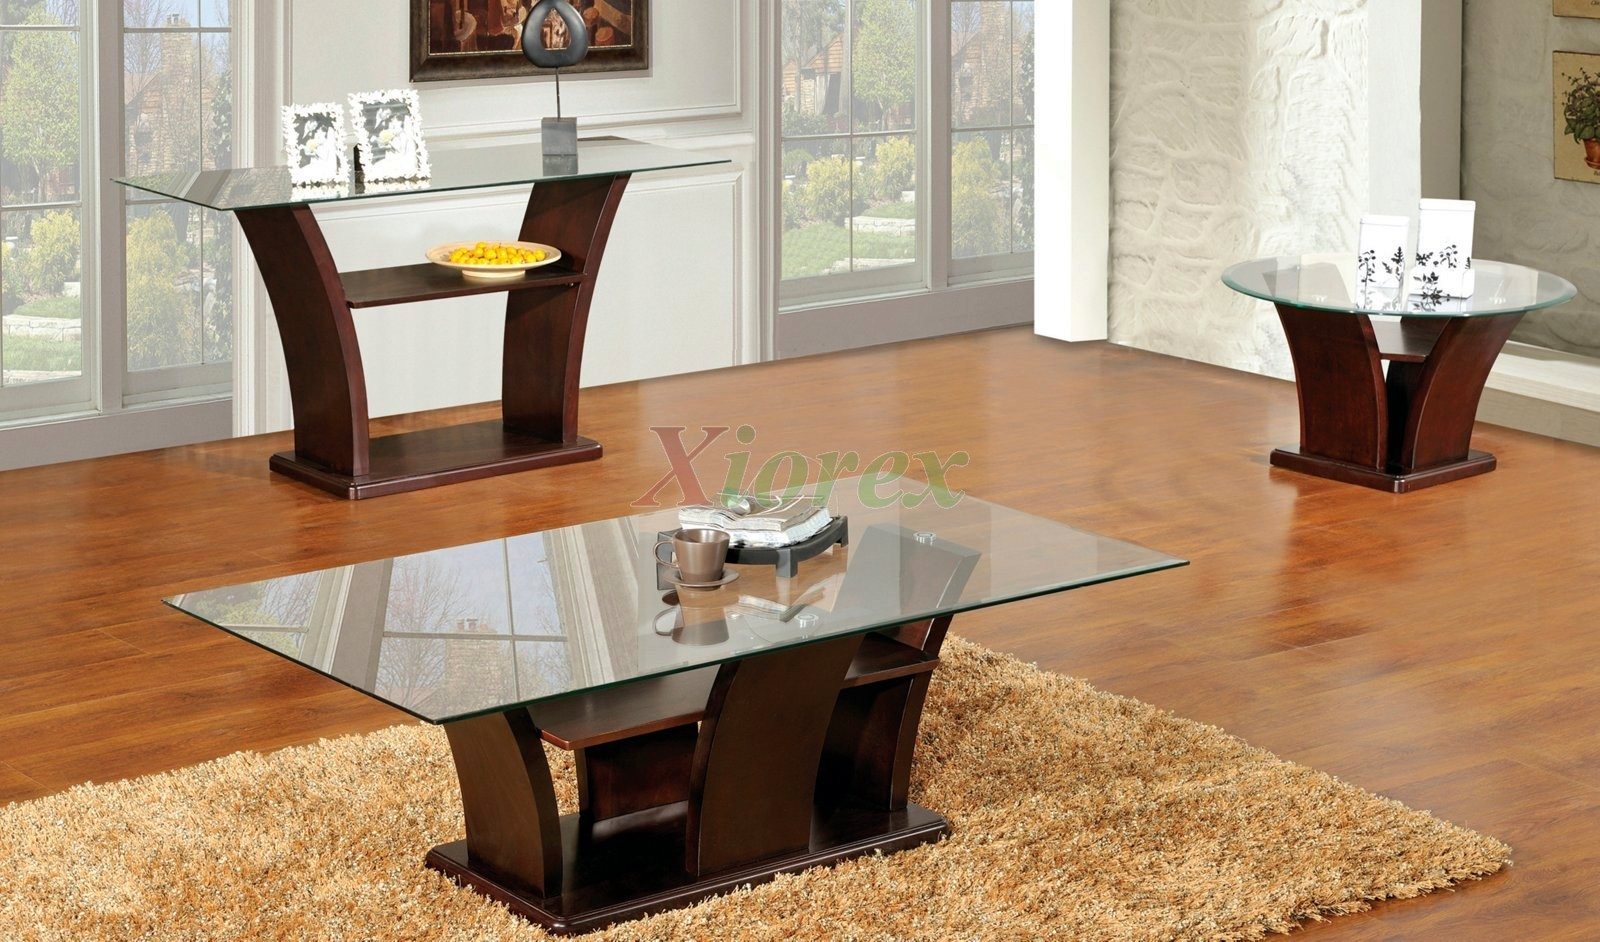 Columba 3 piece coffee table set with sofa console table xiorex 3 set coffee tables